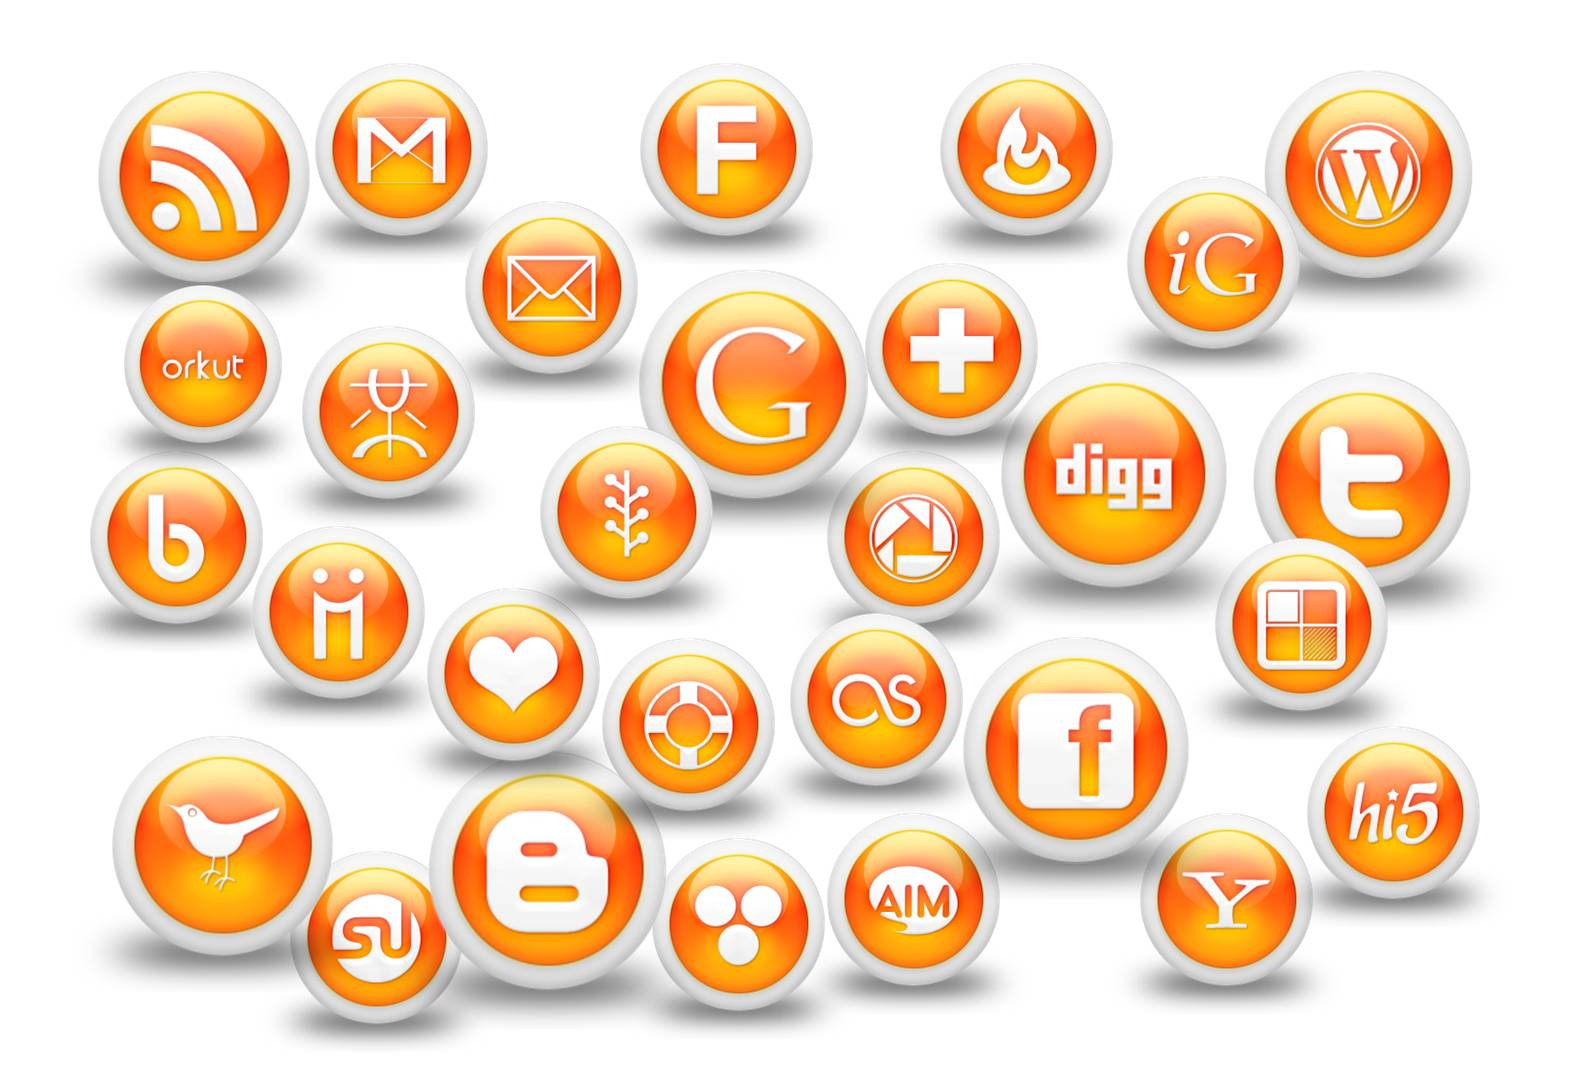 14 Business Management Icon Orange Images